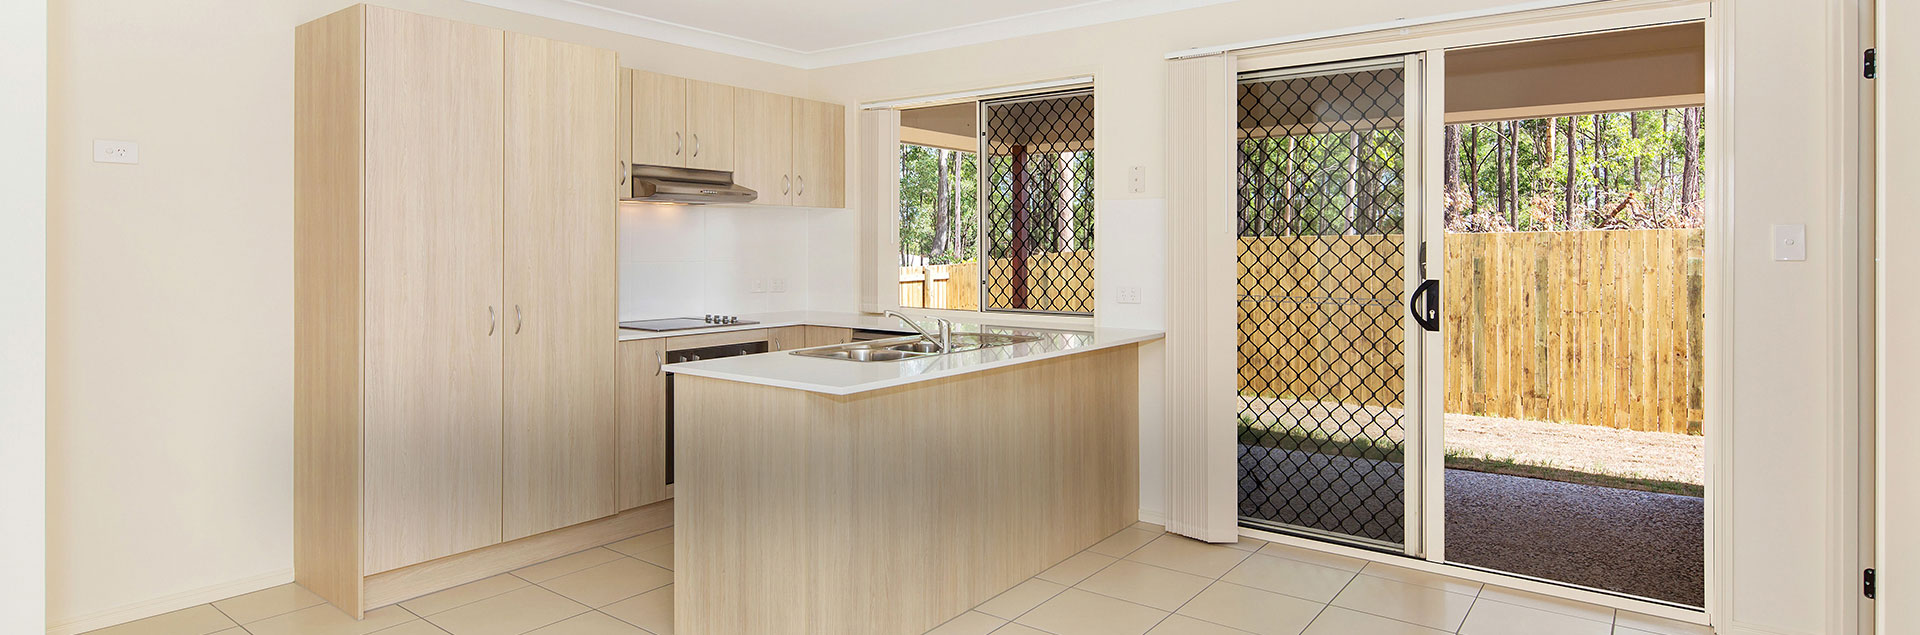 Dual Living Property Brisbane - Property Queensland